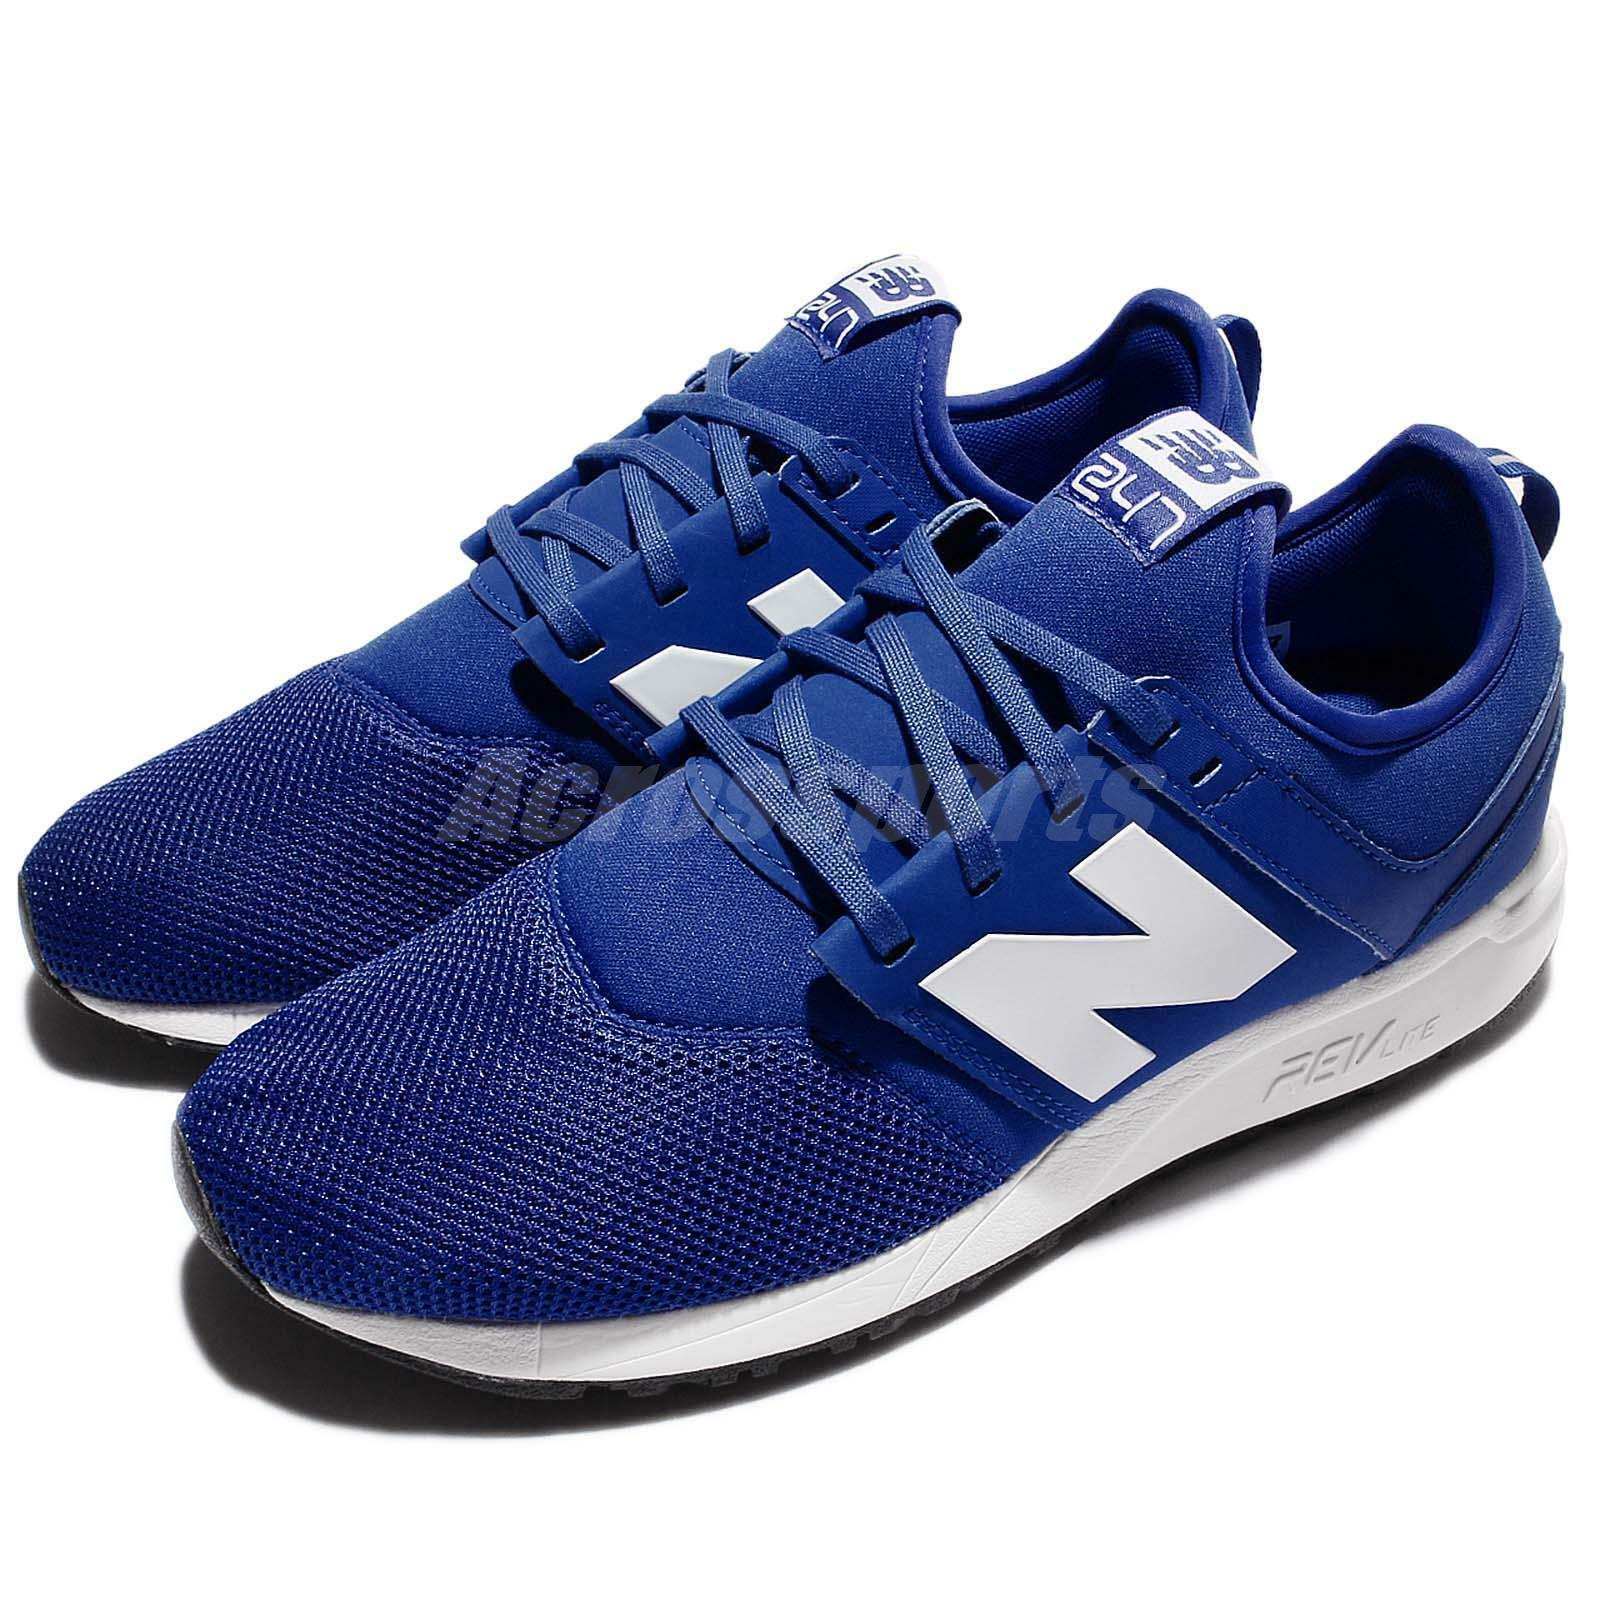 New Balance MRL247BW D bleu Hommes Running Chaussures Sneakers Trainers MRL247BWD